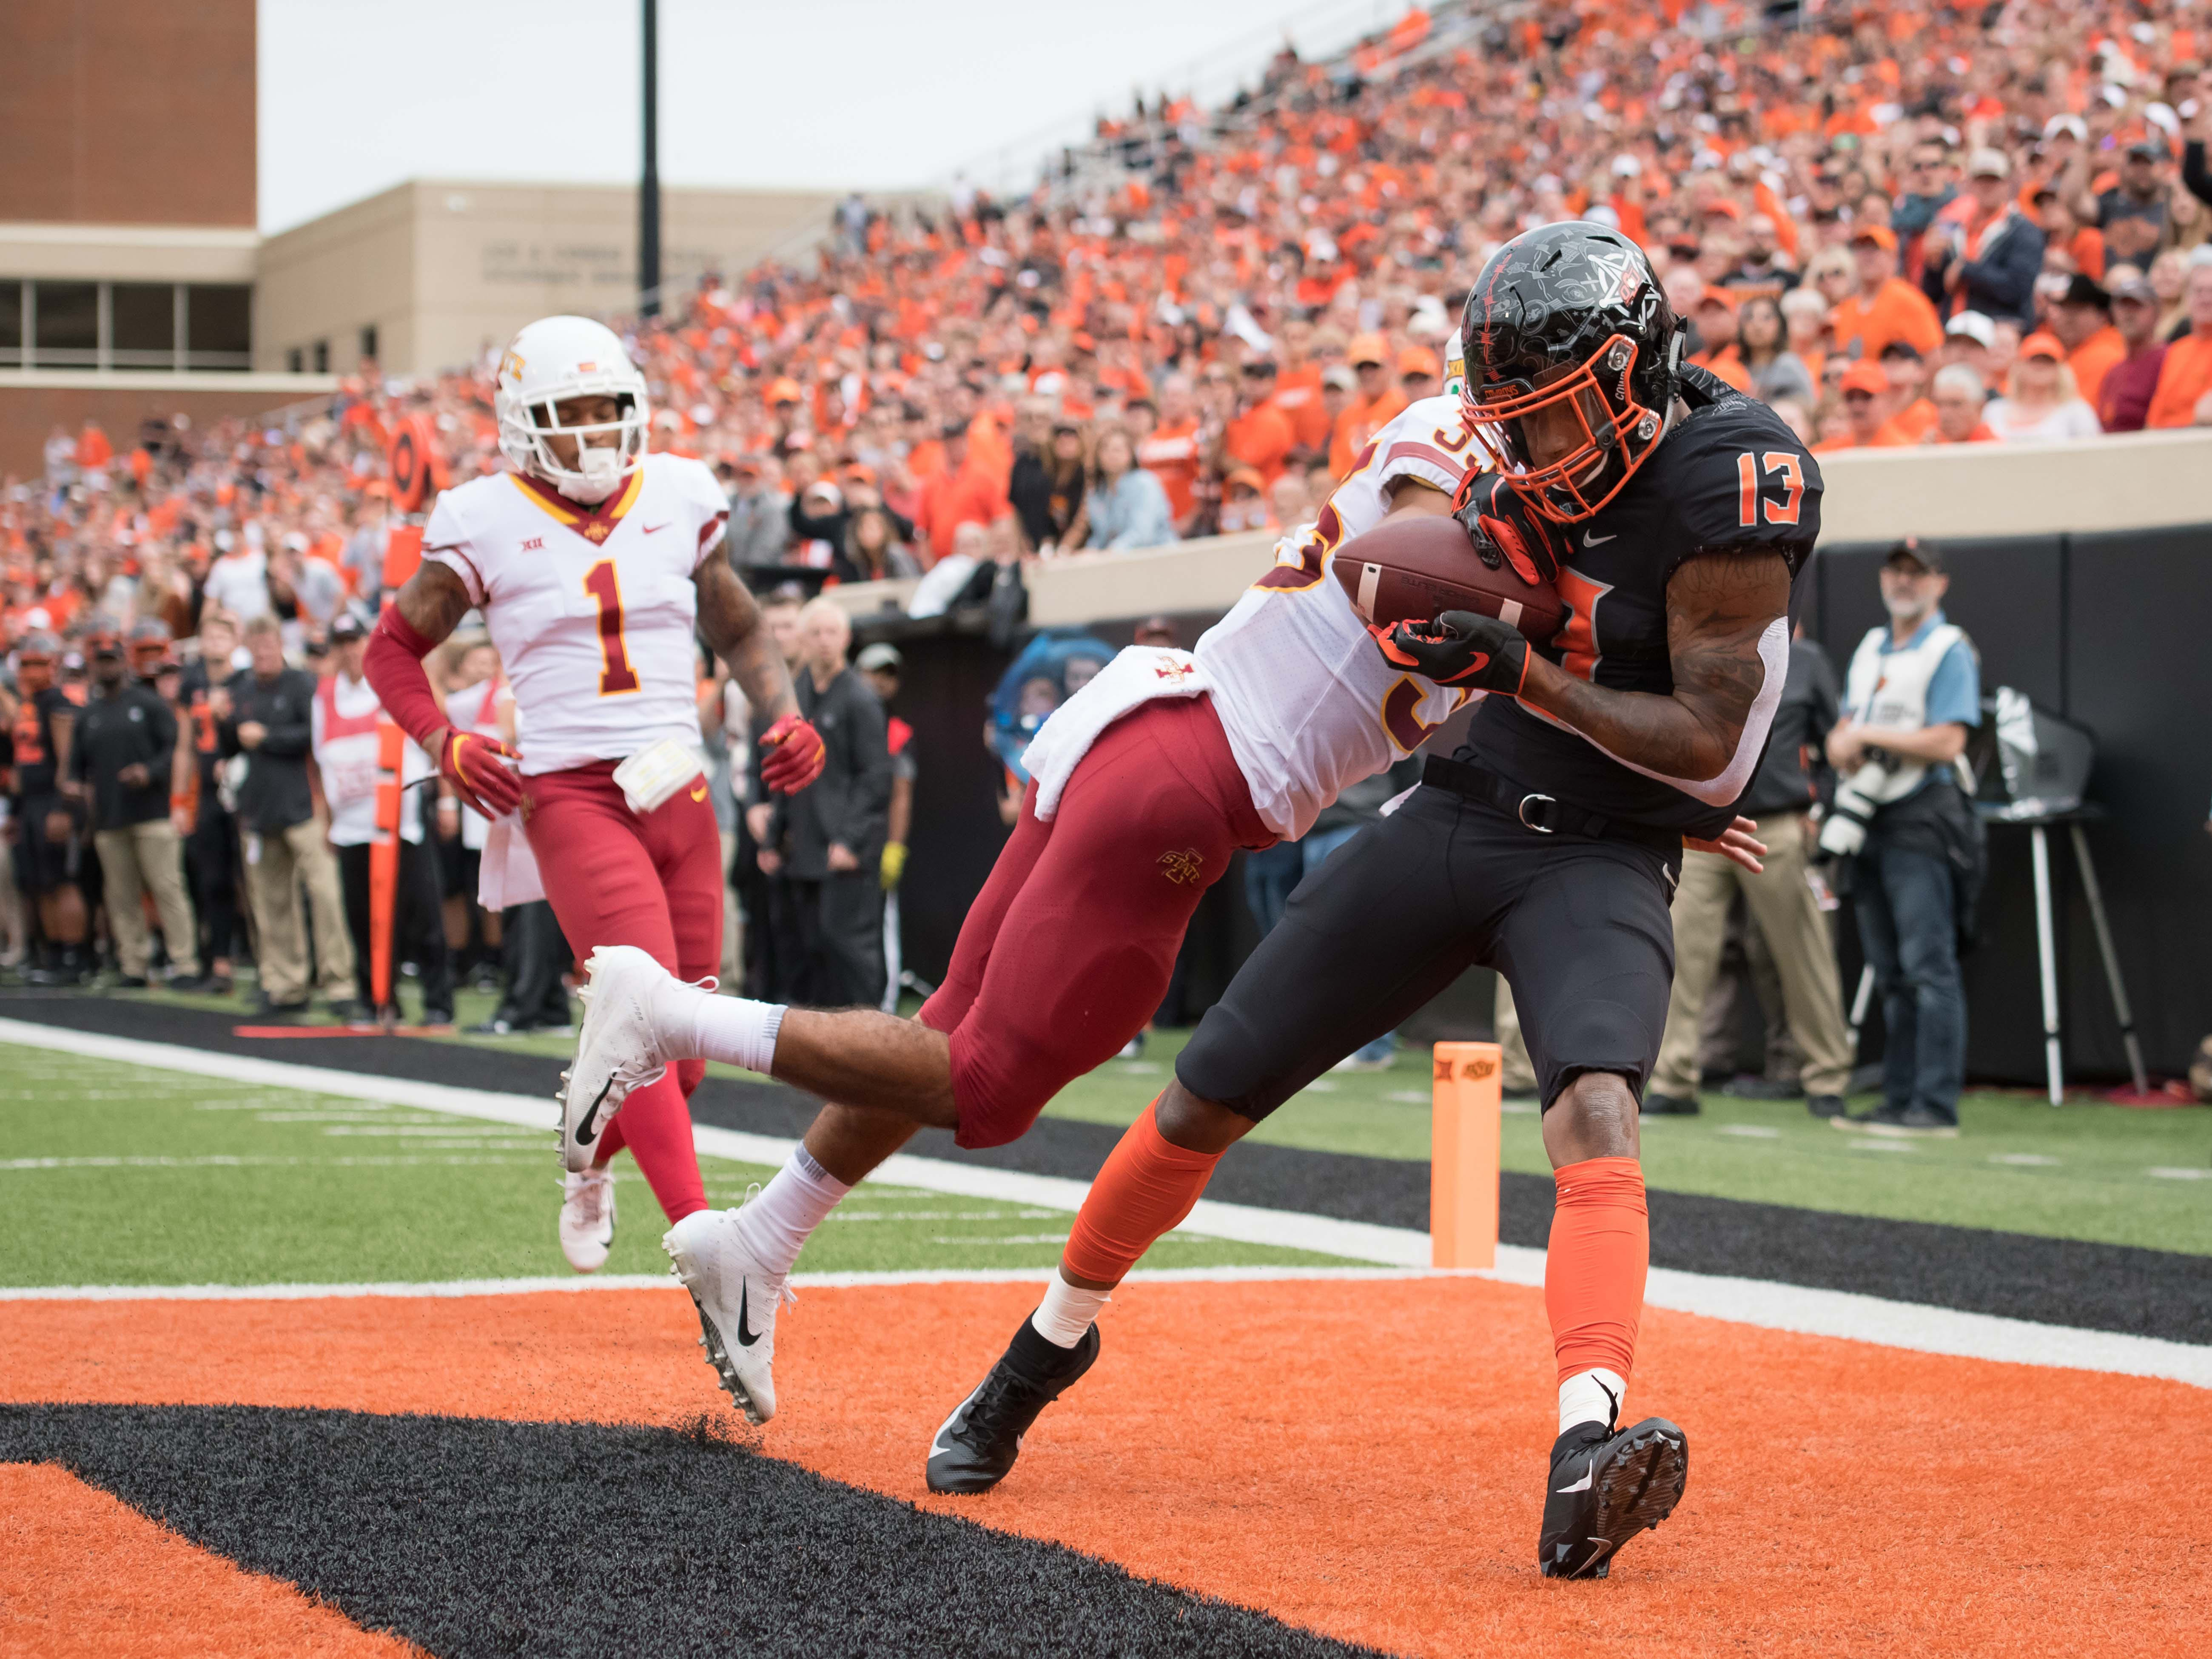 Oct 6, 2018; Stillwater, OK, USA; Oklahoma State Cowboys wide receiver Tyron Johnson (13) makes a catch for a touchdown against Iowa State Cyclones defensive back Braxton Lewis (33) during the first half at Boone Pickens Stadium.